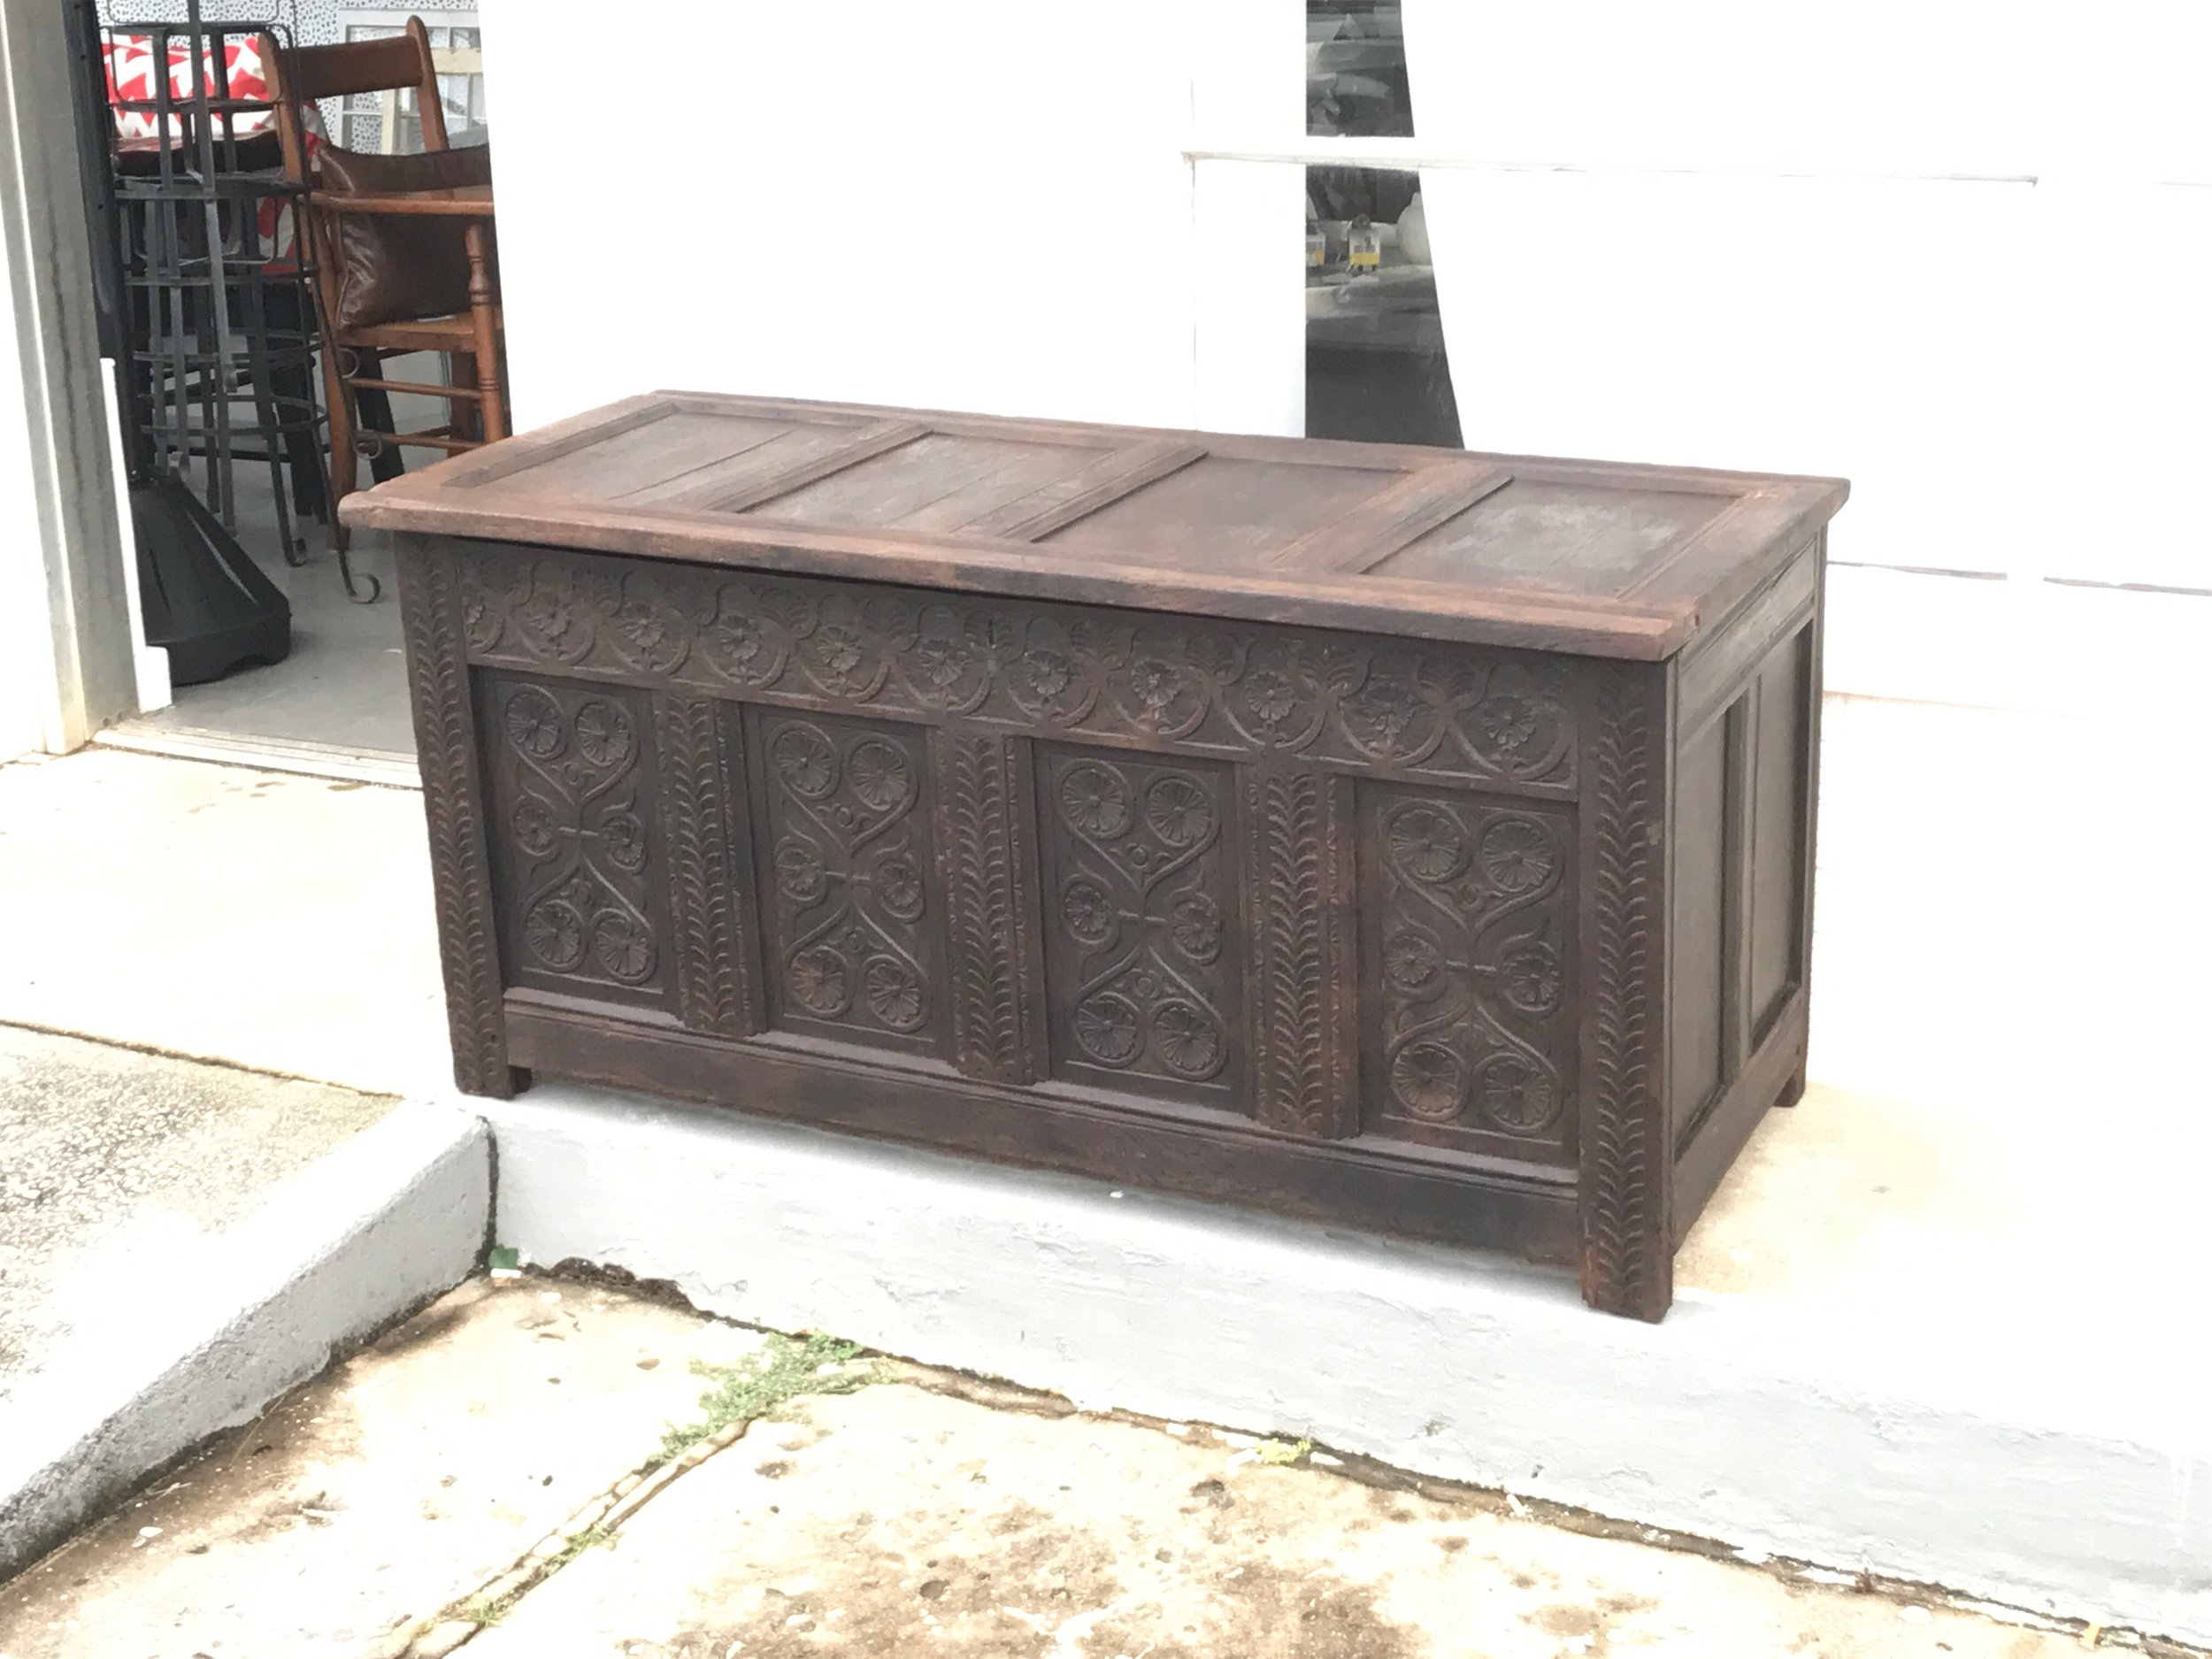 Hand carved 17th century chest!